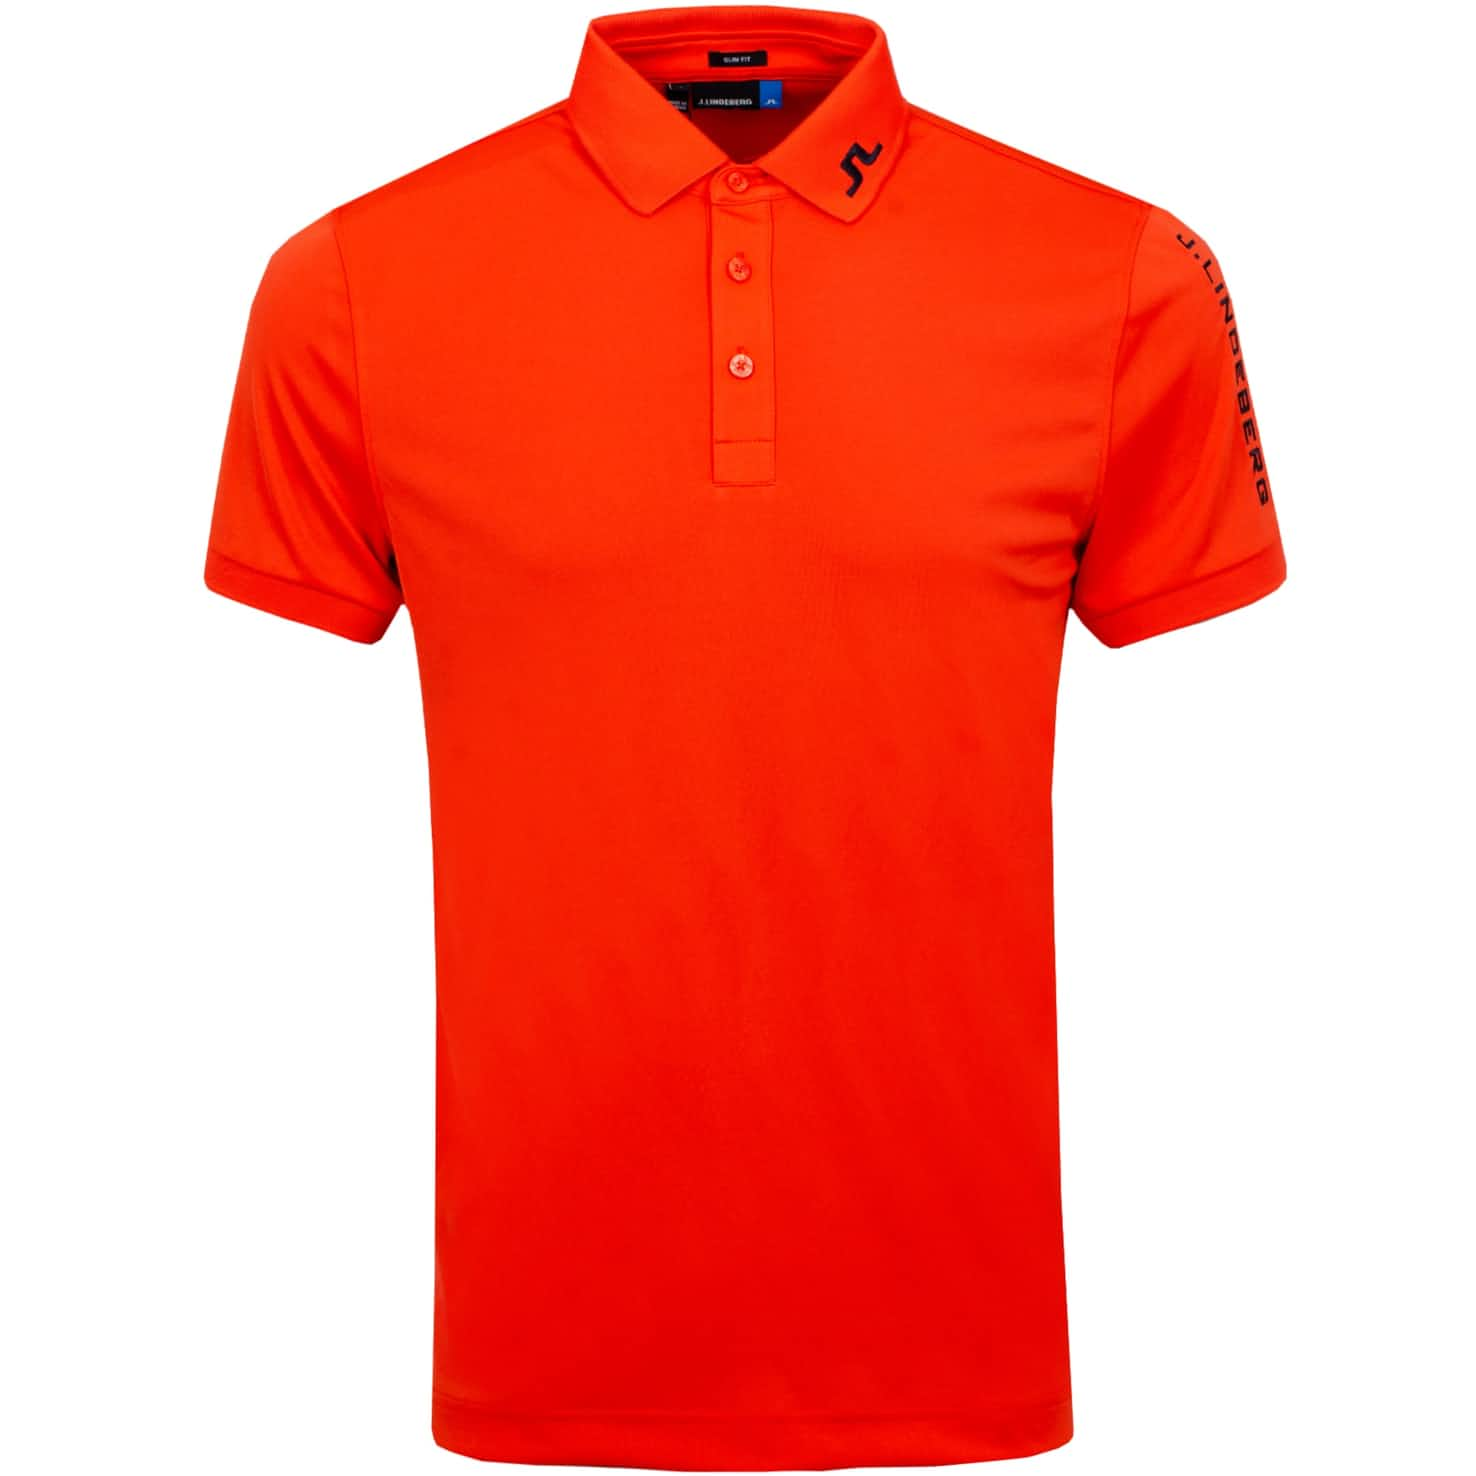 Tour Tech Slim Fit TX Jersey Tomato Red - SS20